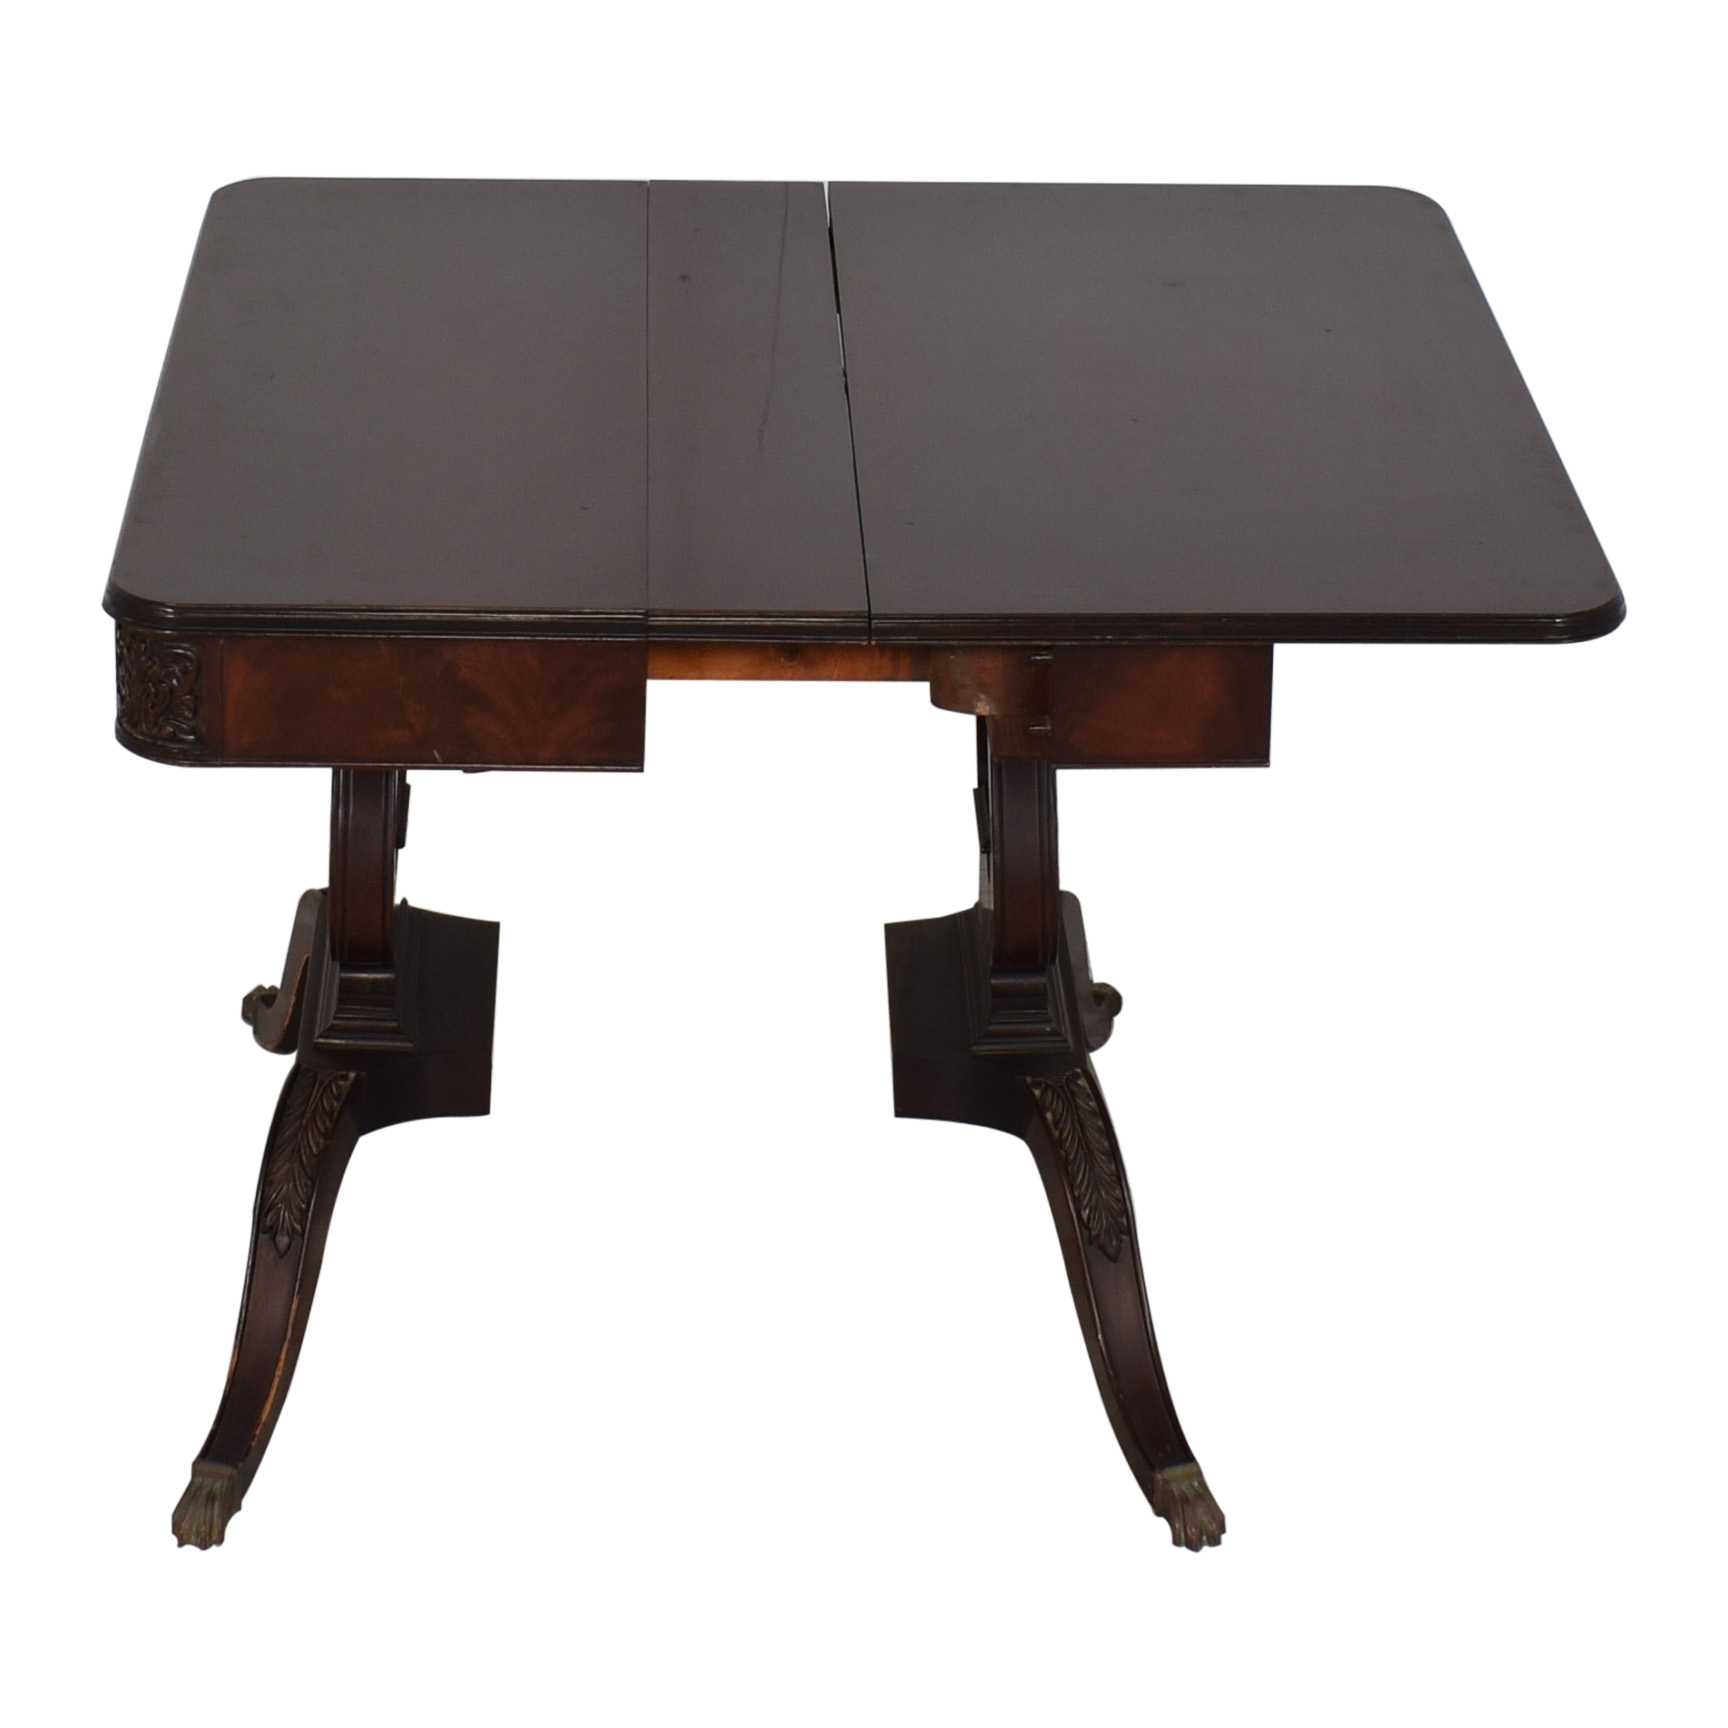 buy  Watertown Table Company Slide Table online